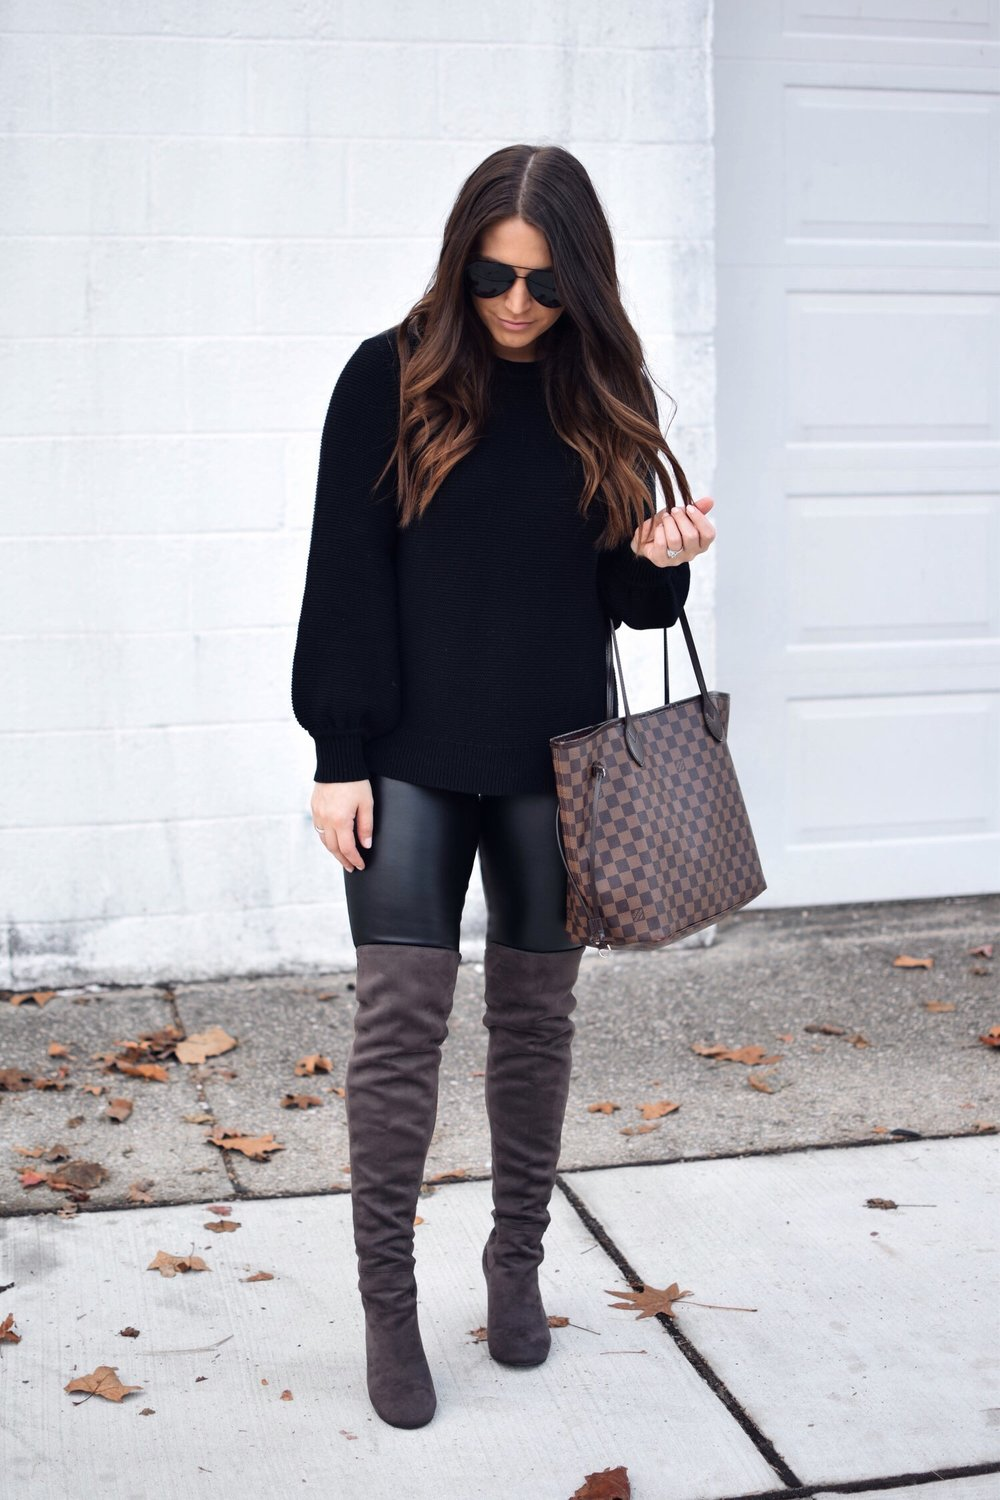 My Outfits On Sale | Pine Barren Beauty | all black outfit idea, fall outfit idea, winter outfit idea, faux leather leggings, over the knee boots, Black Friday sales